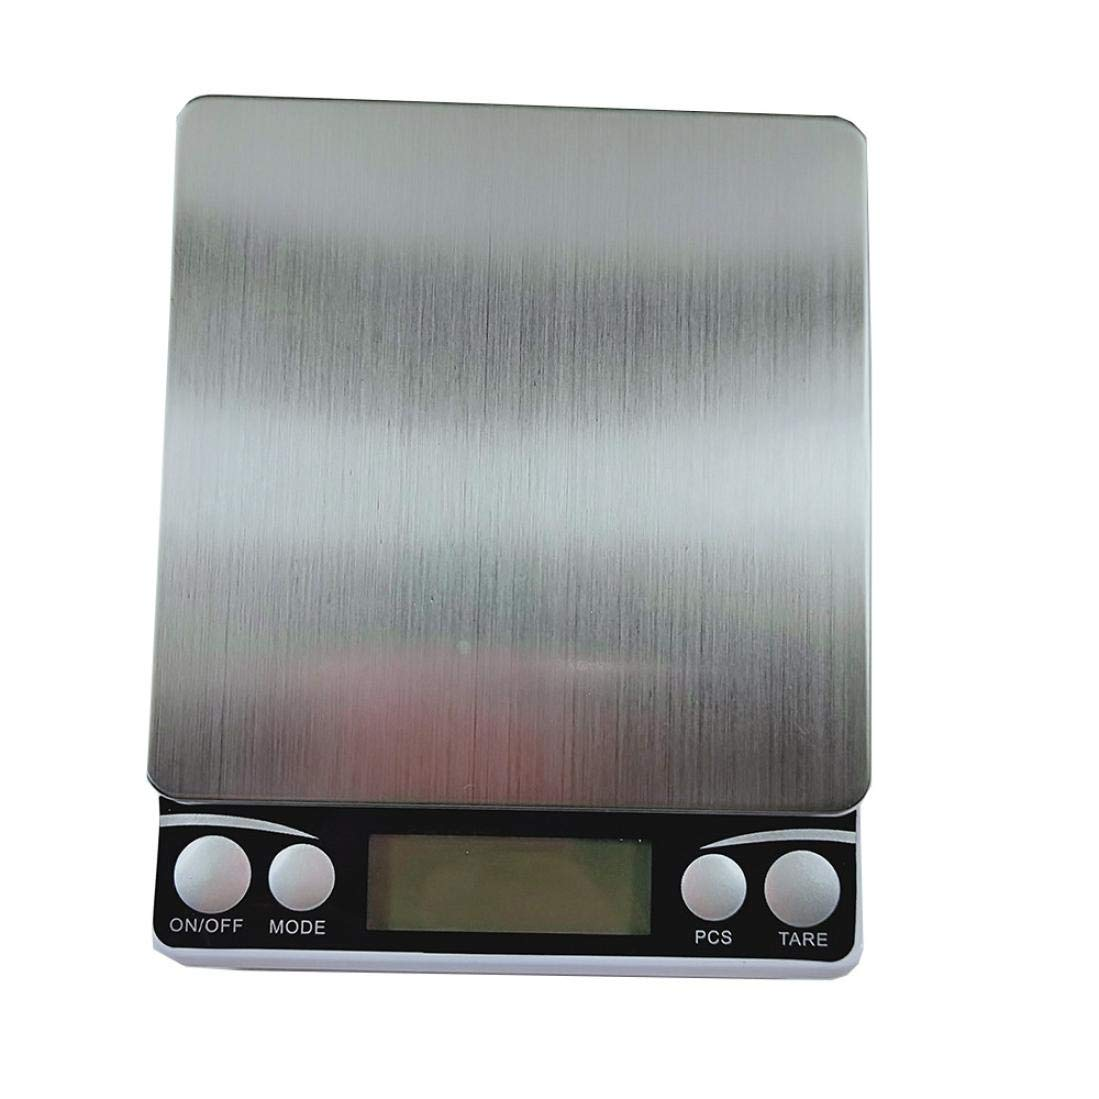 Digital Scale,LtrottedJ High Precision Mini Stainless Steel Jewelry Scale,0.01g/0.1g Electronic Scale (C)